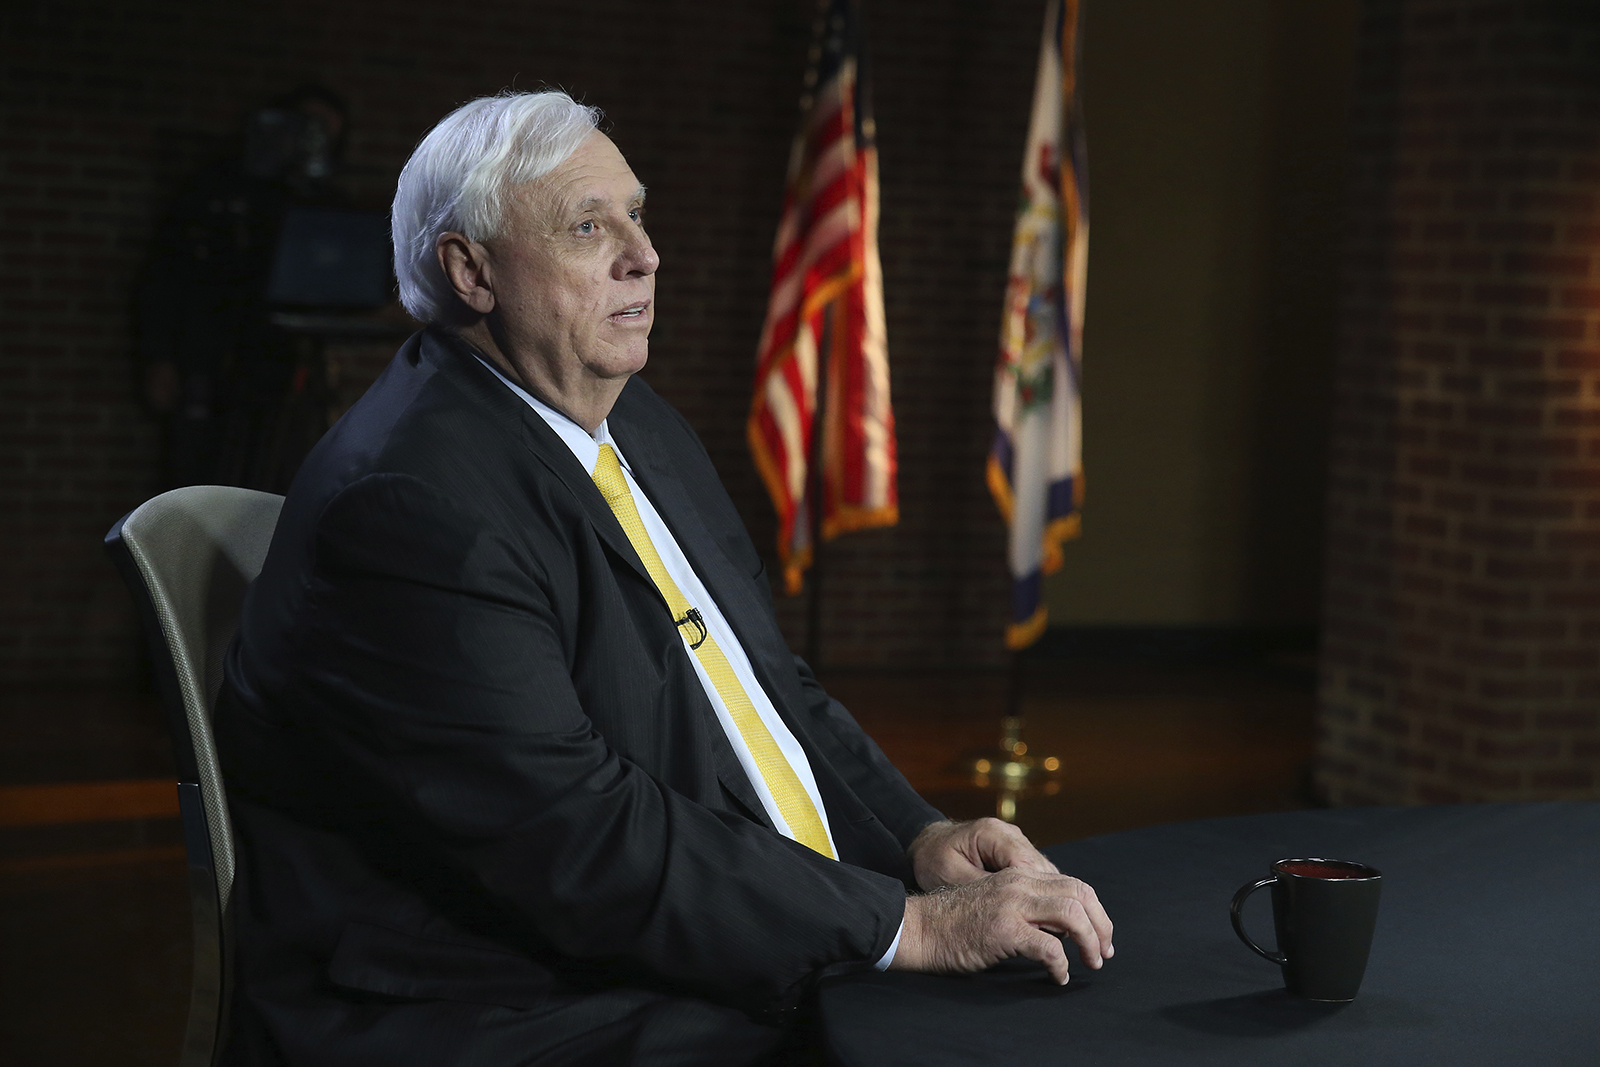 West Virginia Gov. Jim Justice prepares for a debate with Democratic challenger, Kanawha County Commissioner Ben Salango in Morgantown, West Virginia, on Tuesday, October 13.